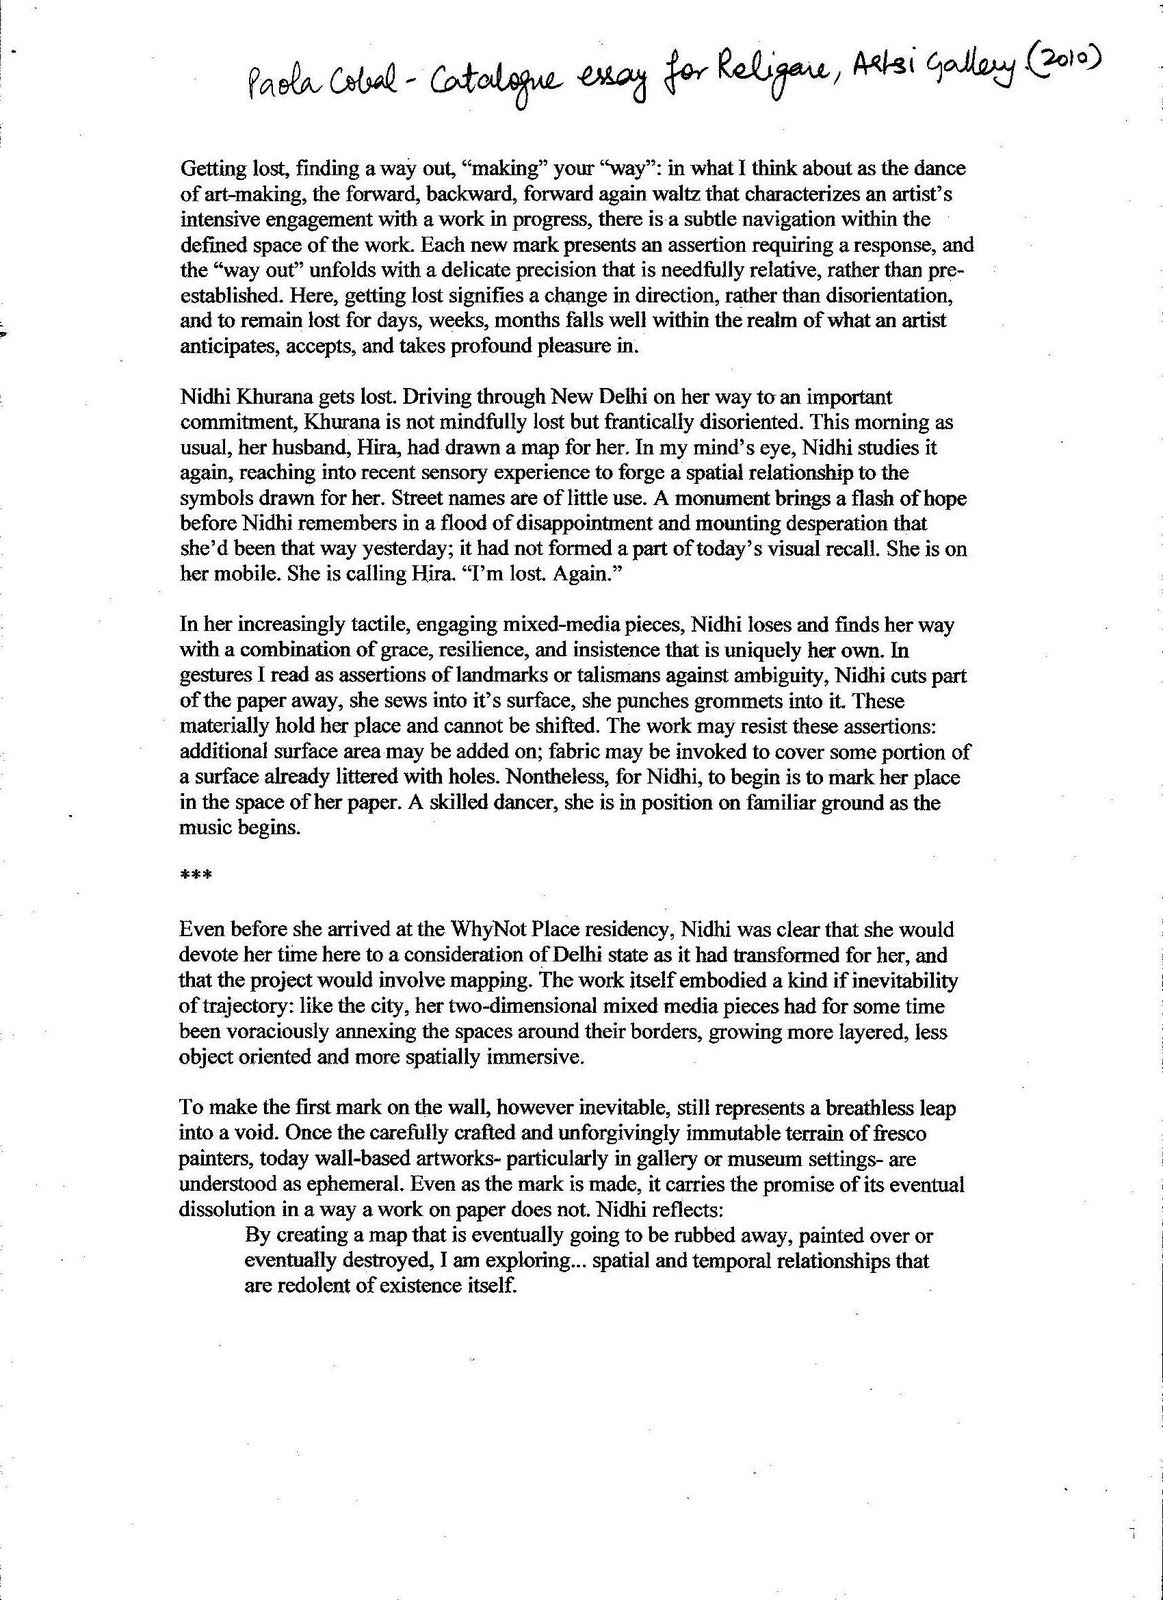 sample of an expository essay cover letter what is an expository  expository essay meaning sample of expository essay expository essay sample on immigration and sample of expository